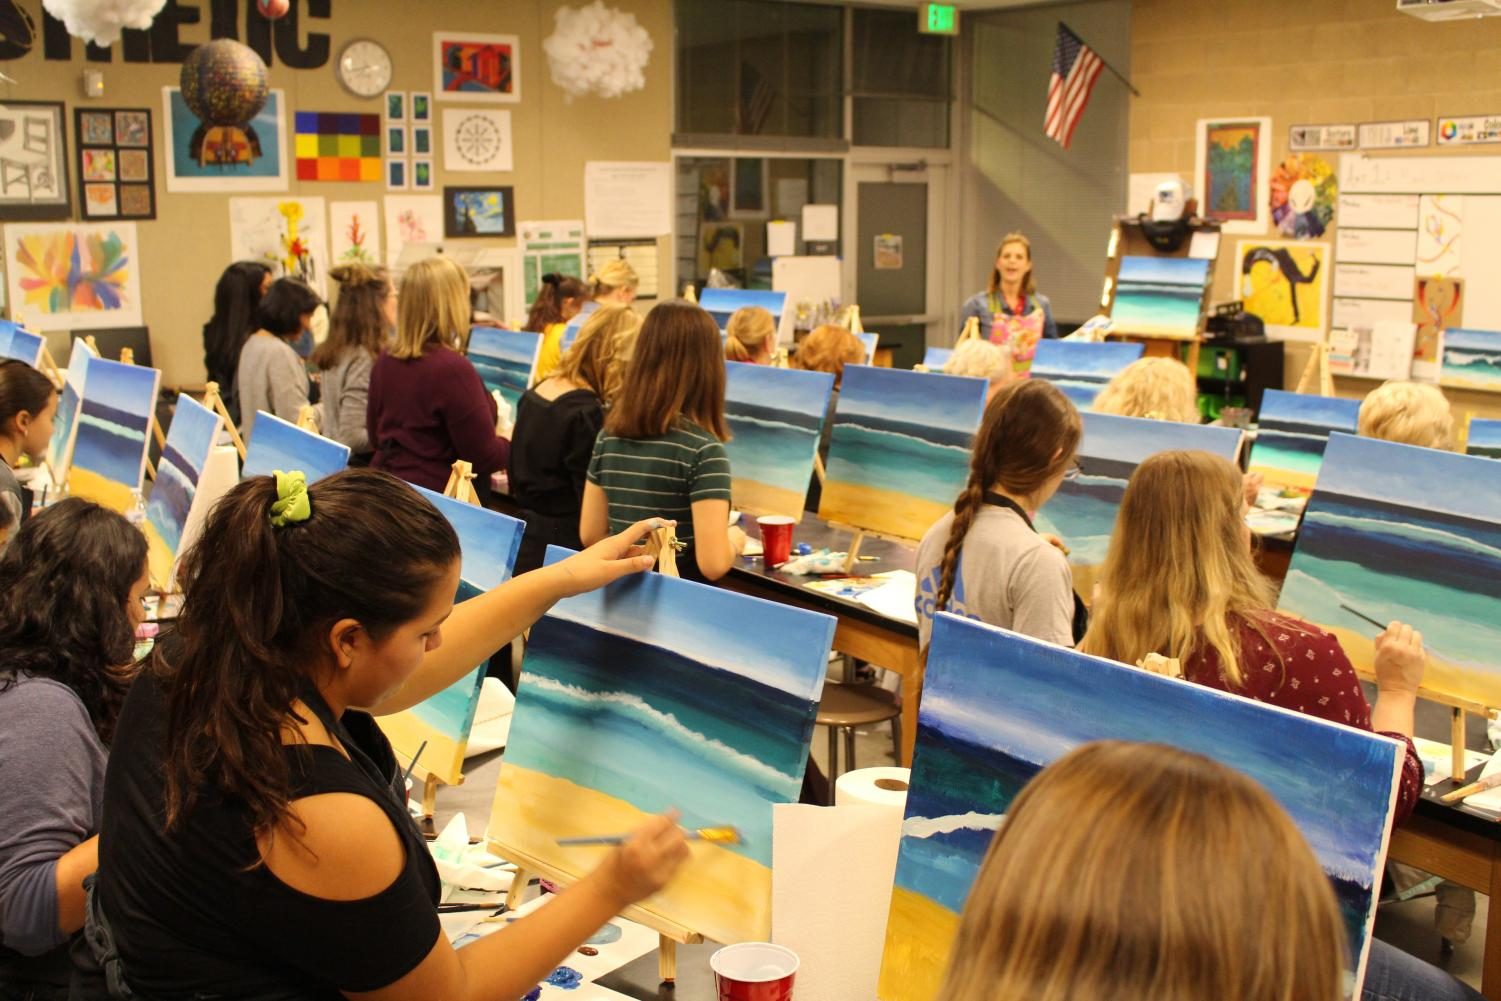 Students+and+community+members+follow+along+with+Mrs.+Herrick+as+she+teaches+them+to+paint+a+beach+scene.+The+Arts%E2%80%99s+department+held+its+annual+paint+night+fundraiser+on+Friday+to+raise+money+for+the+program.